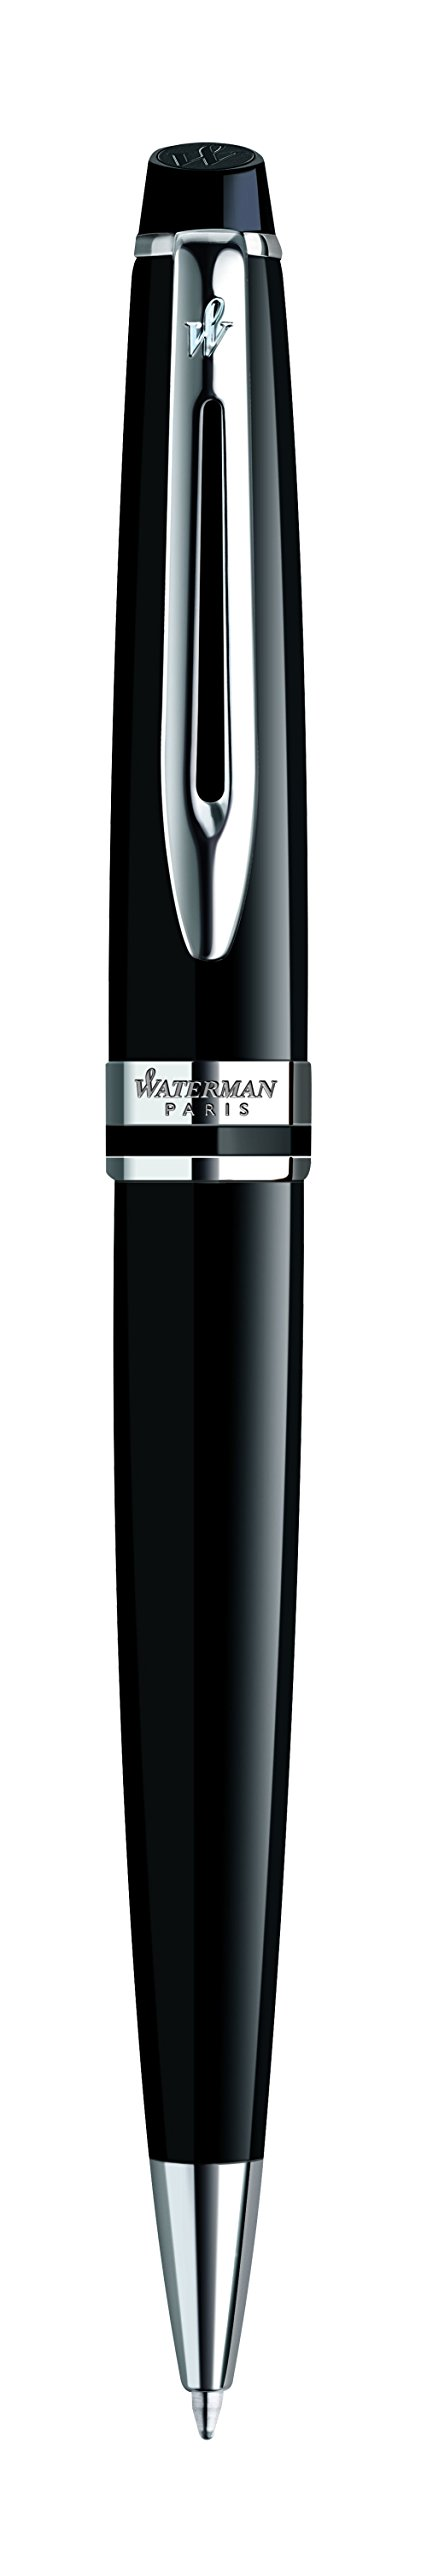 Waterman Expert Ballpoint Pen, Gloss Black with Chrome Trim, Medium Point with Blue Ink Cartridge, Gift Box by Waterman (Image #7)